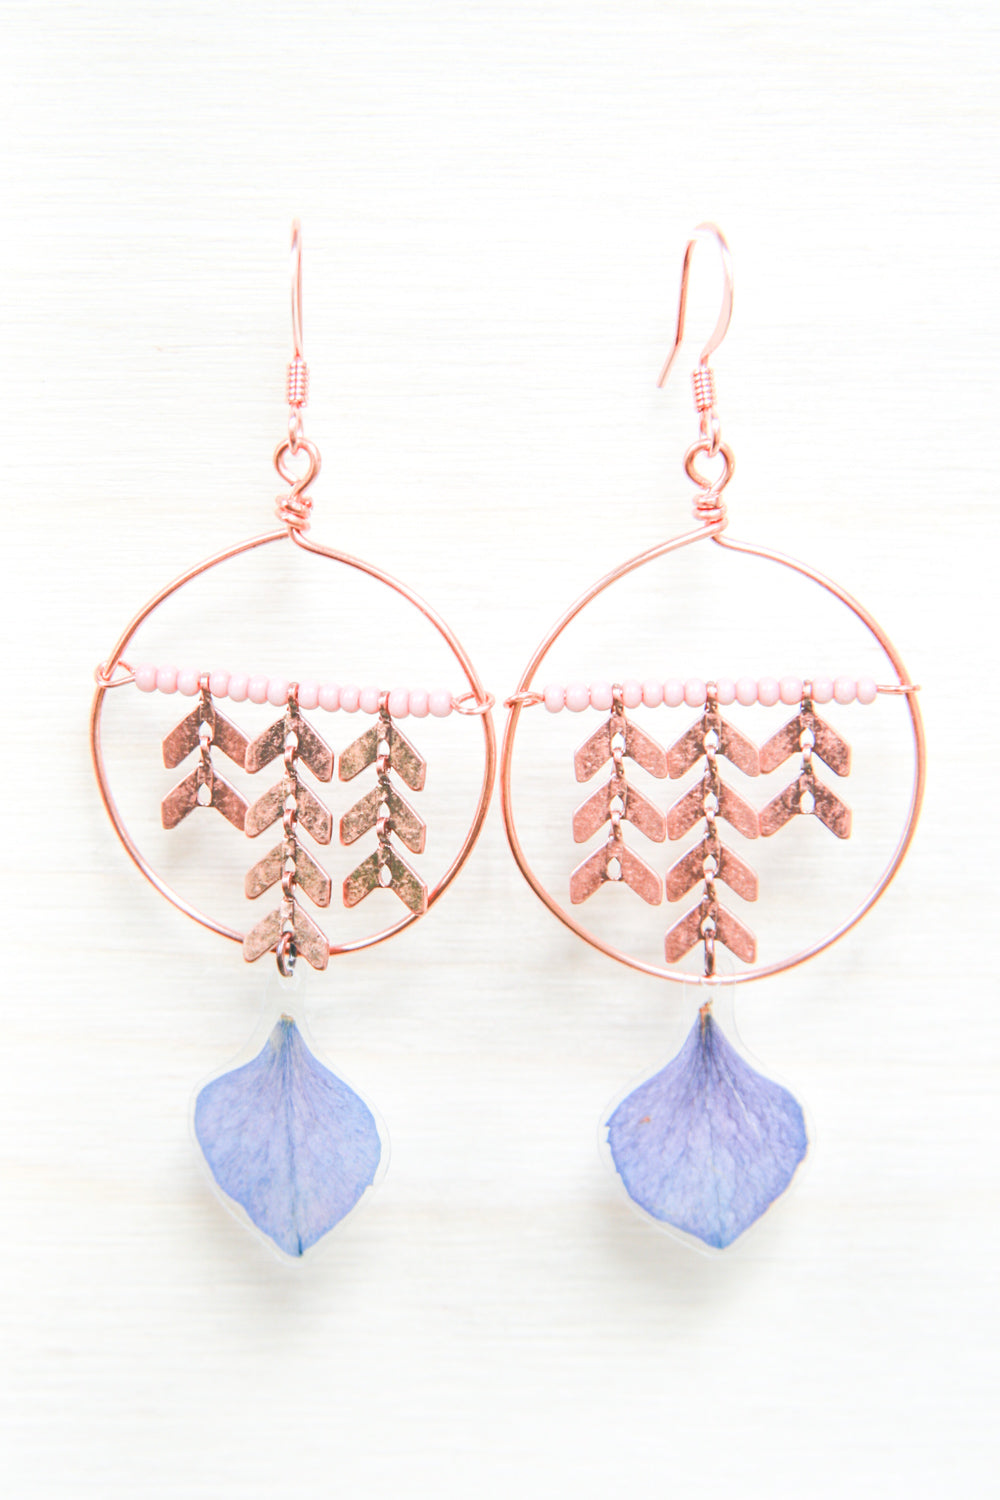 Purple Hydrangea Pressed Flower Earrings with Copper Hoop & Glass Beads